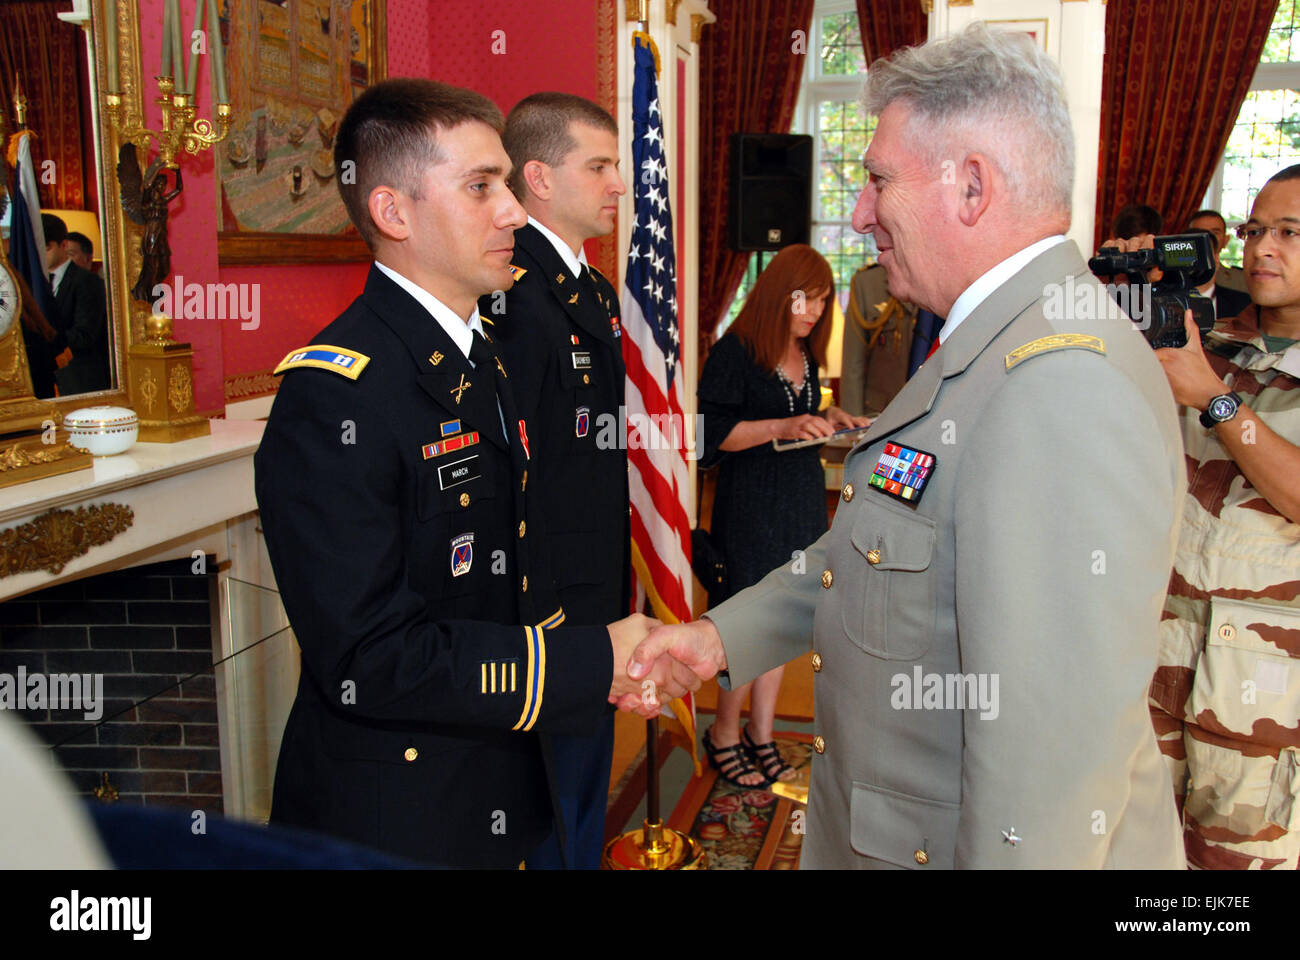 French Gen. Bertrand Ract-Madoux, Chief of Staff of the French Army, congratulates U.S. Army Capt. Benjamin H. March - Stock Image